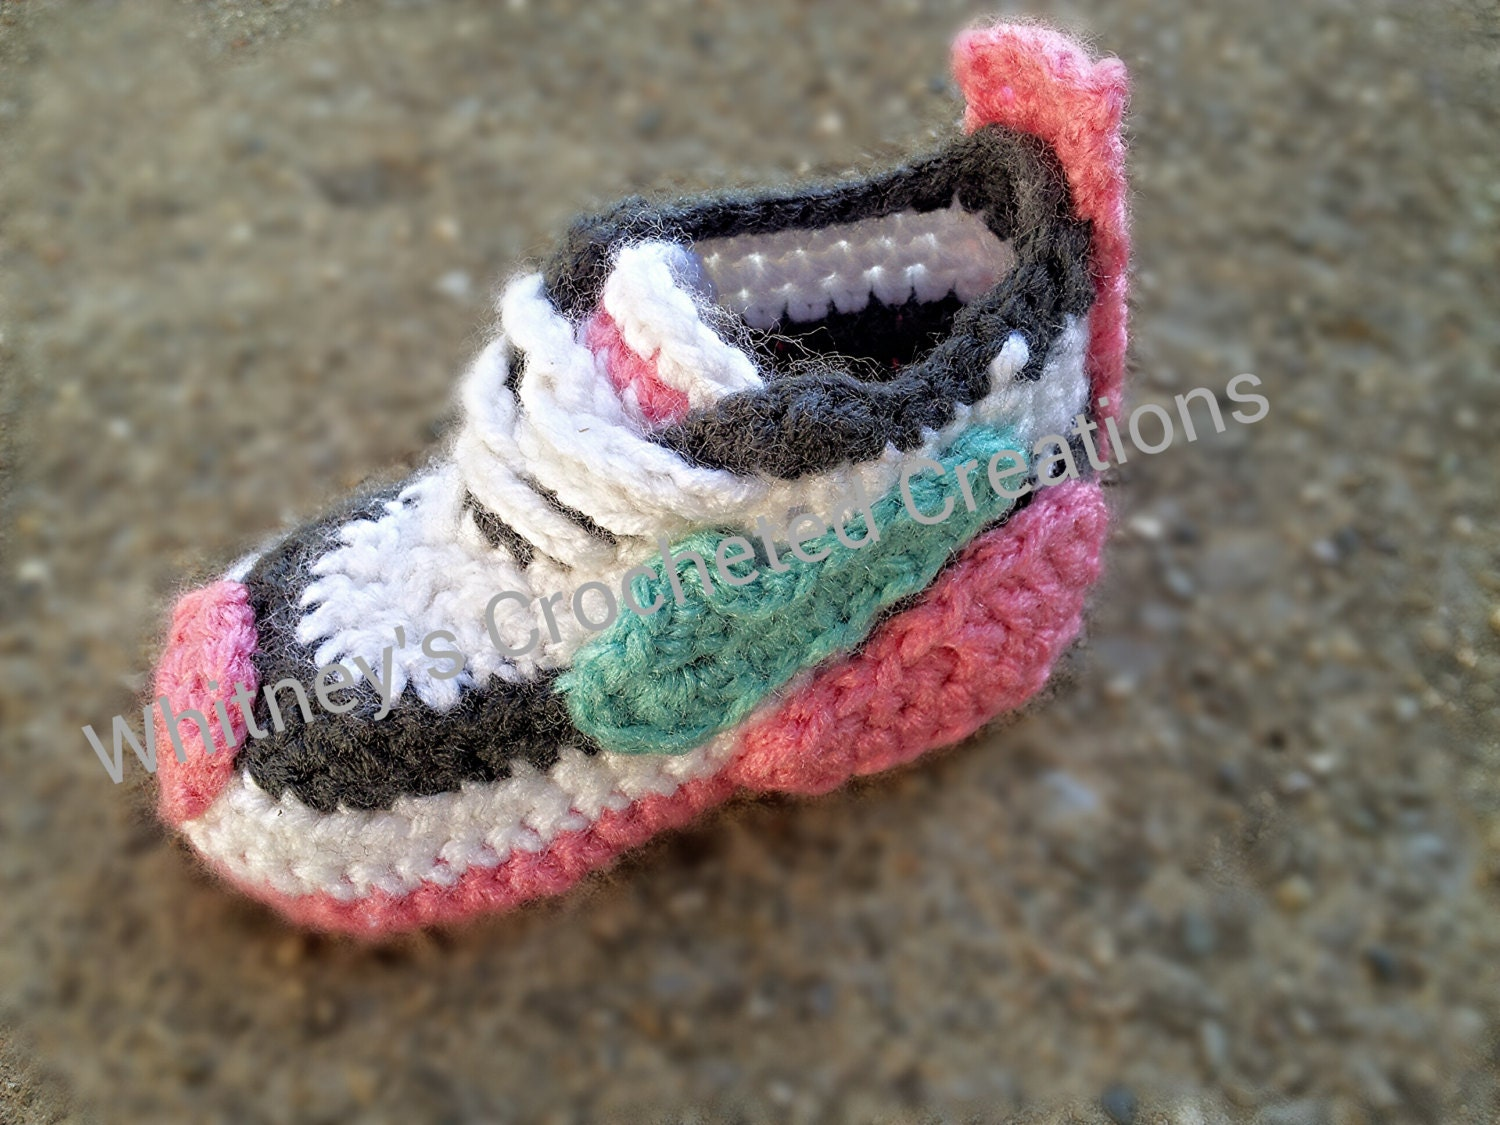 Crochet Pattern Baby Tennis Shoes : Nike Inspired tennis shoes Crochet pattern by ...